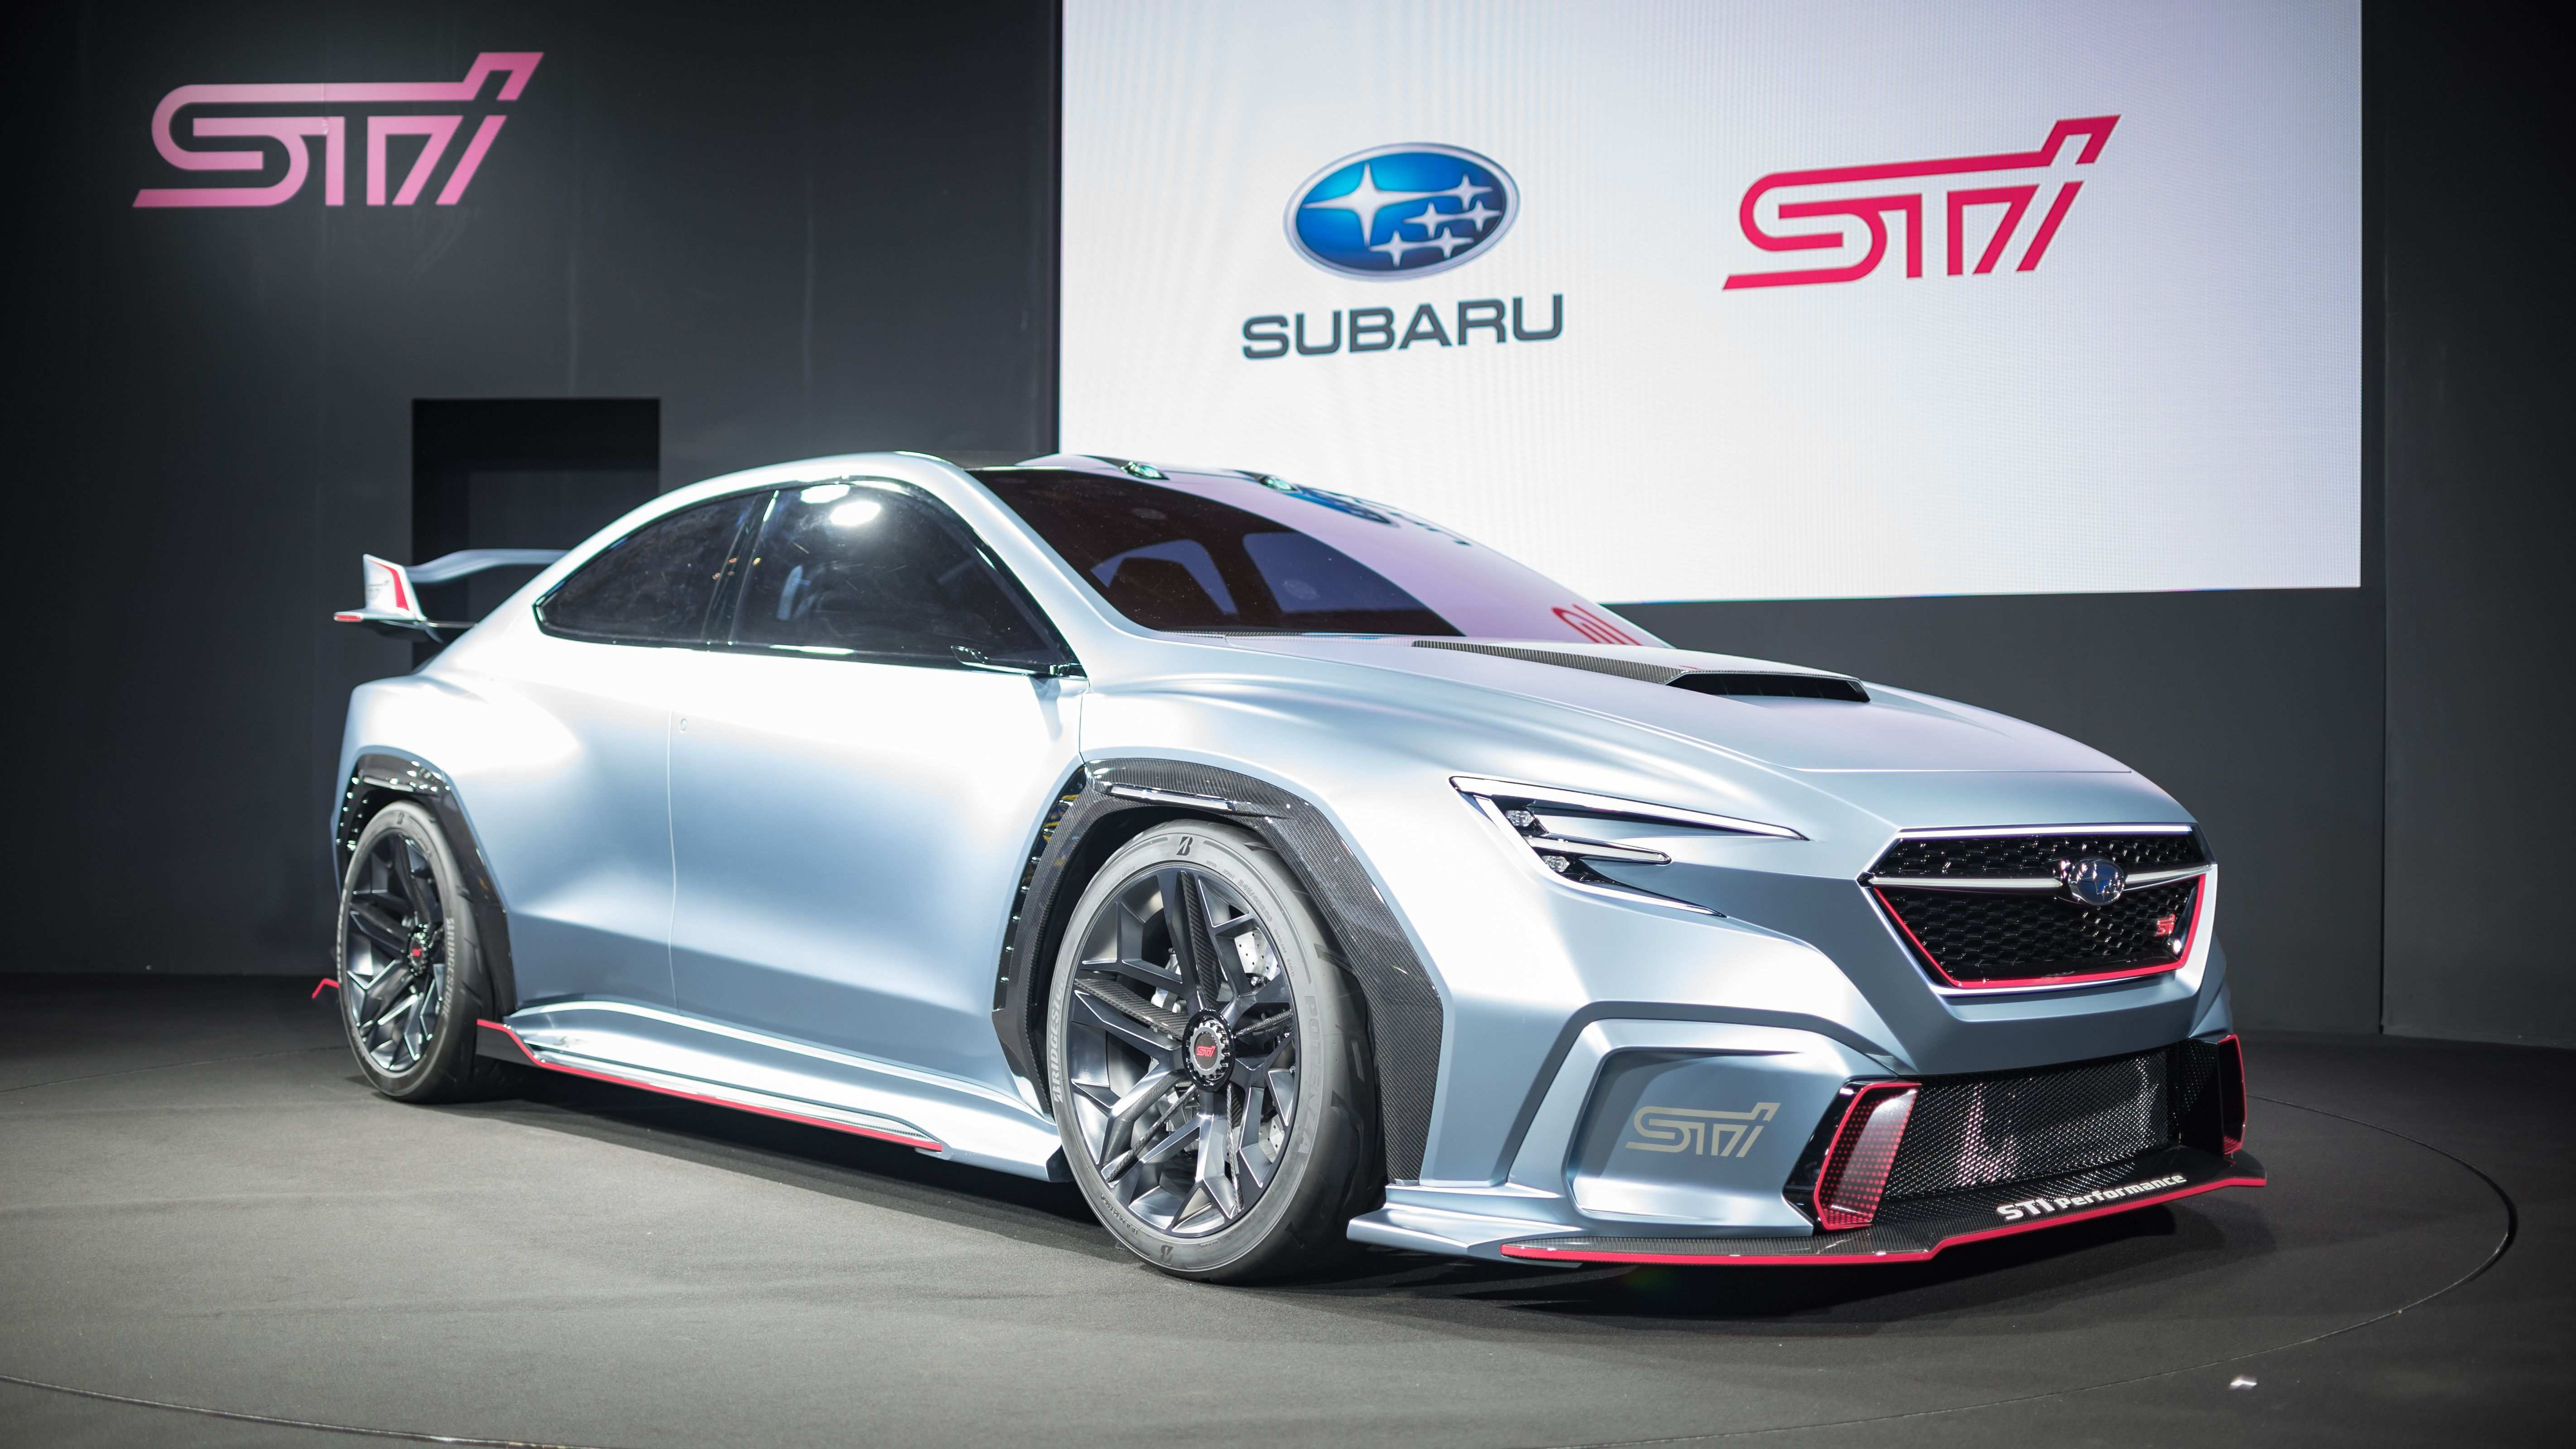 59 The Best Subaru Wrx Sti 2020 Concept Specs And Review